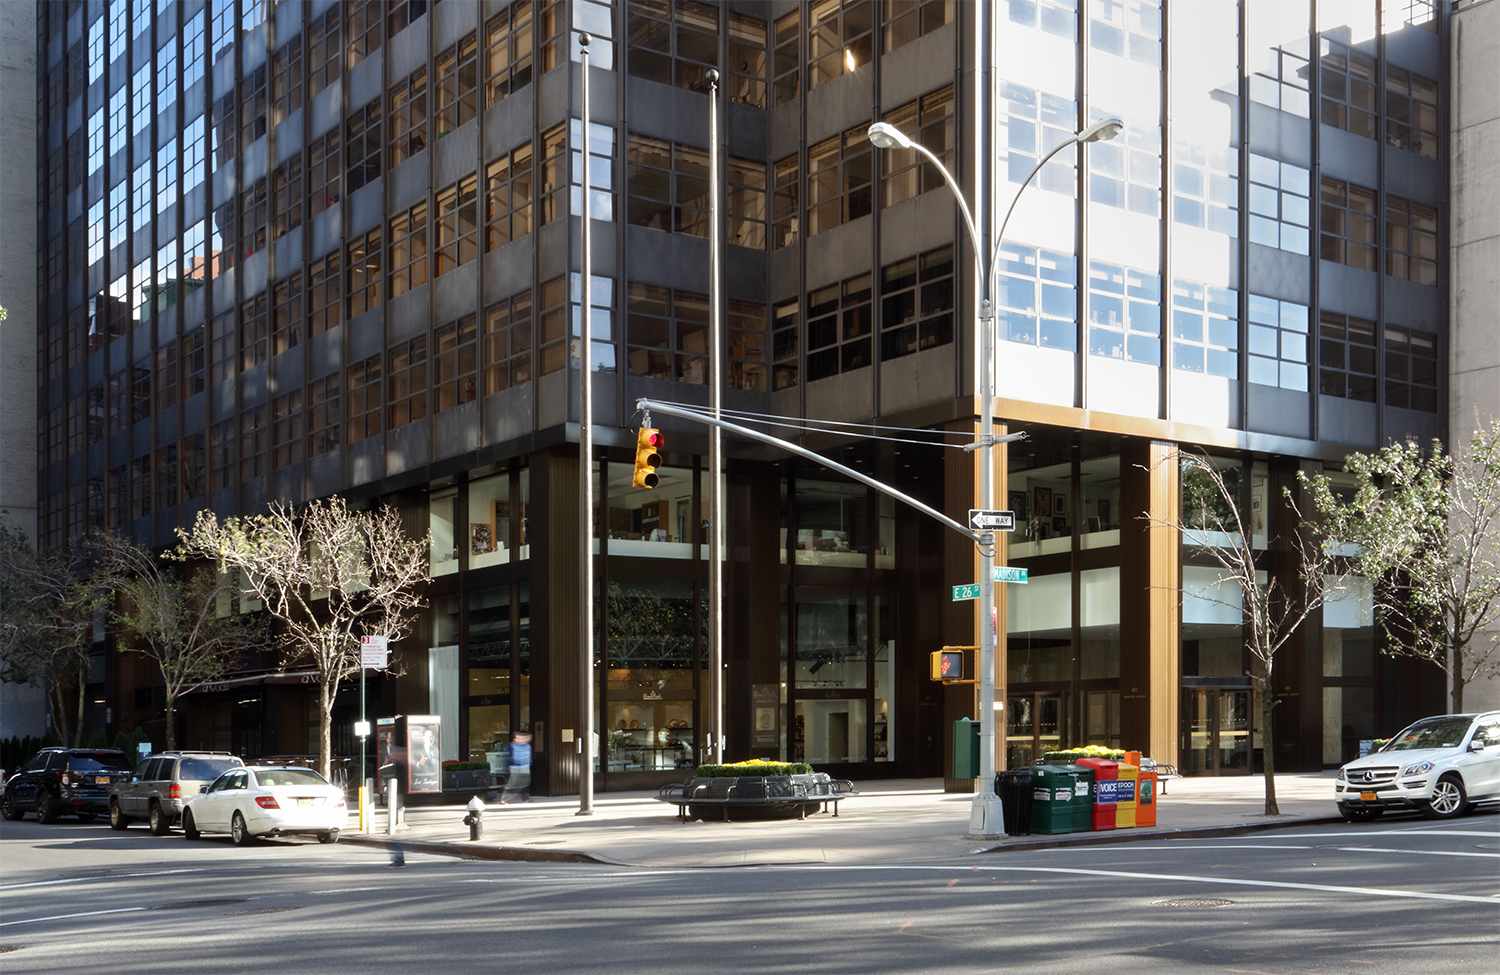 41 Madison Avenue, existing conditions. Via Rudin Management.